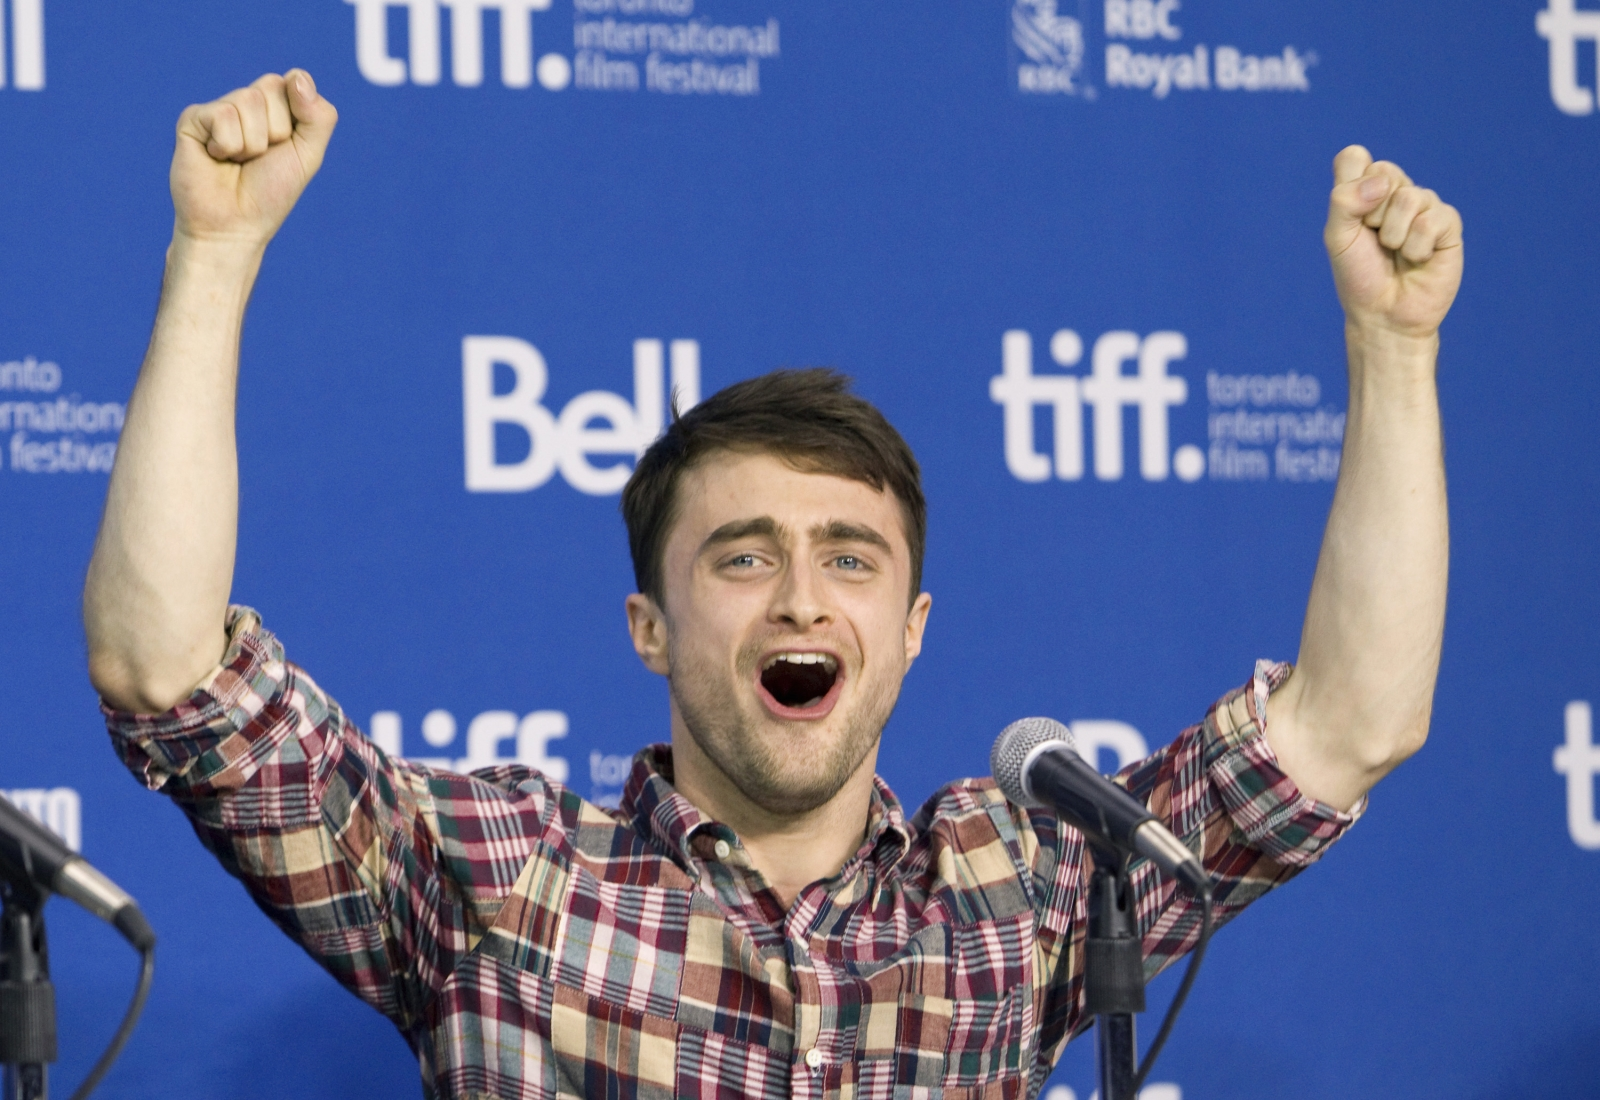 Actor Daniel Radcliffe at a news conference for the film